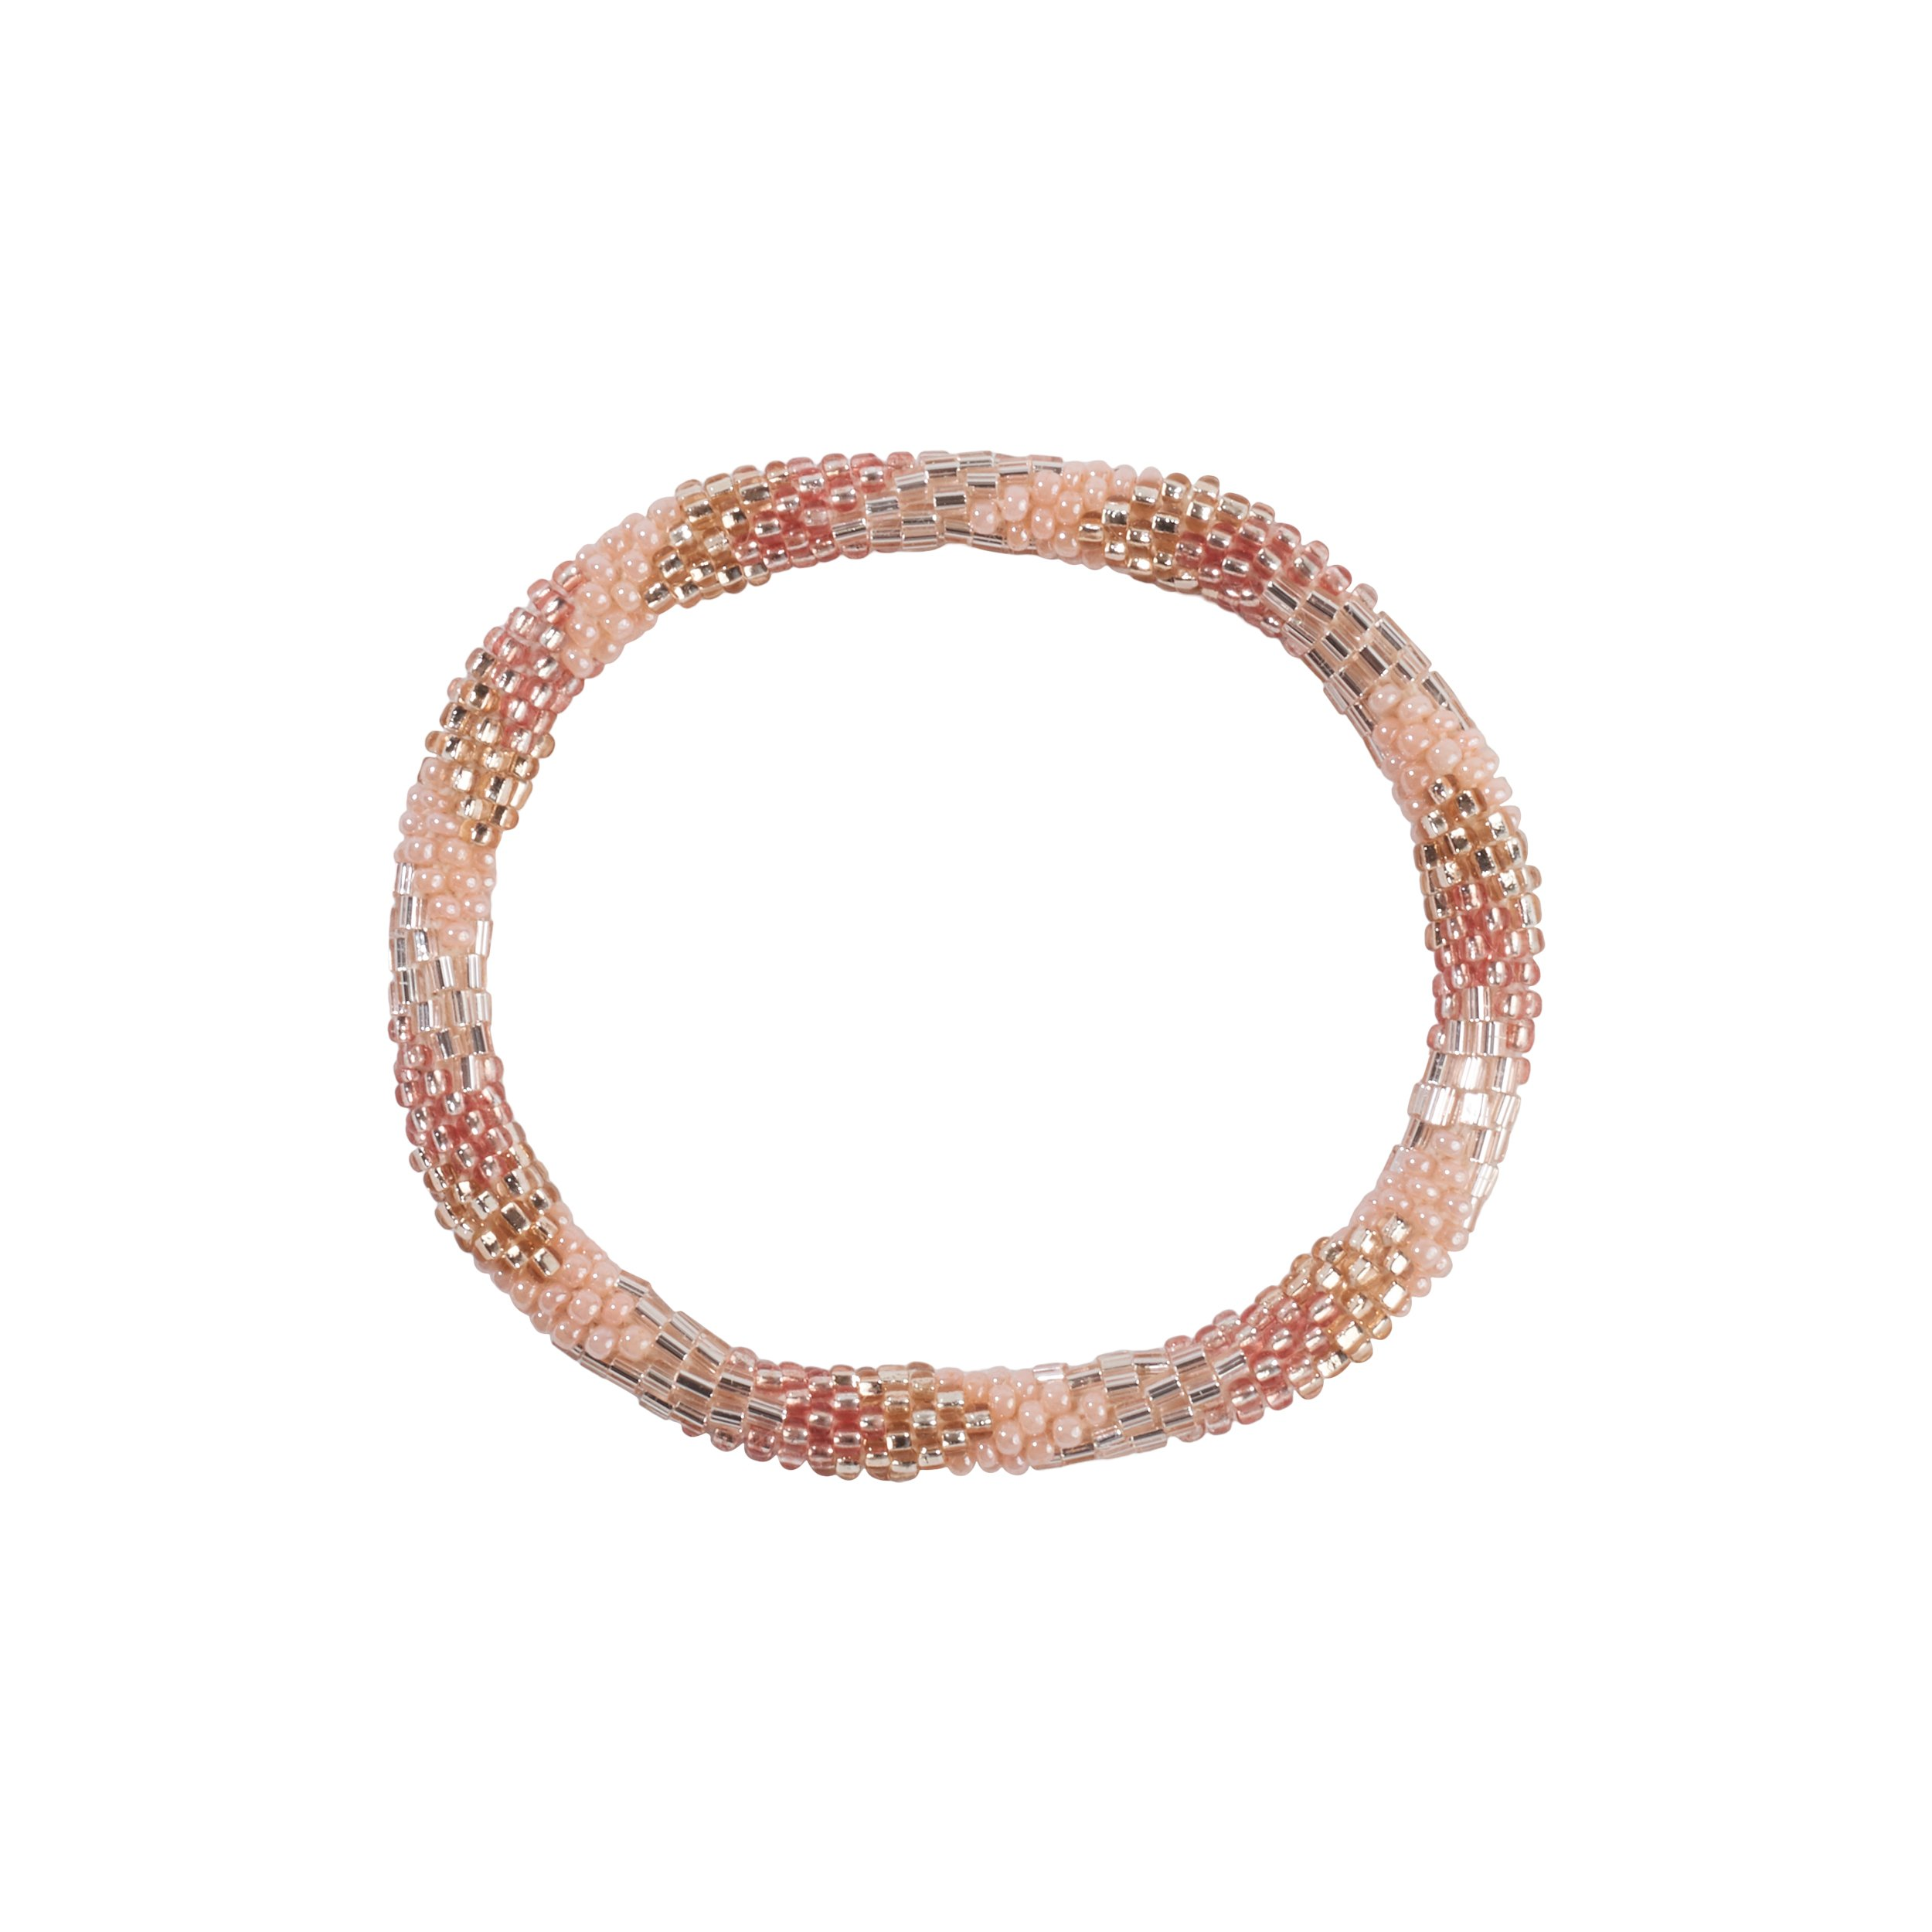 Nepal perle armbånd / Roll on bracelet